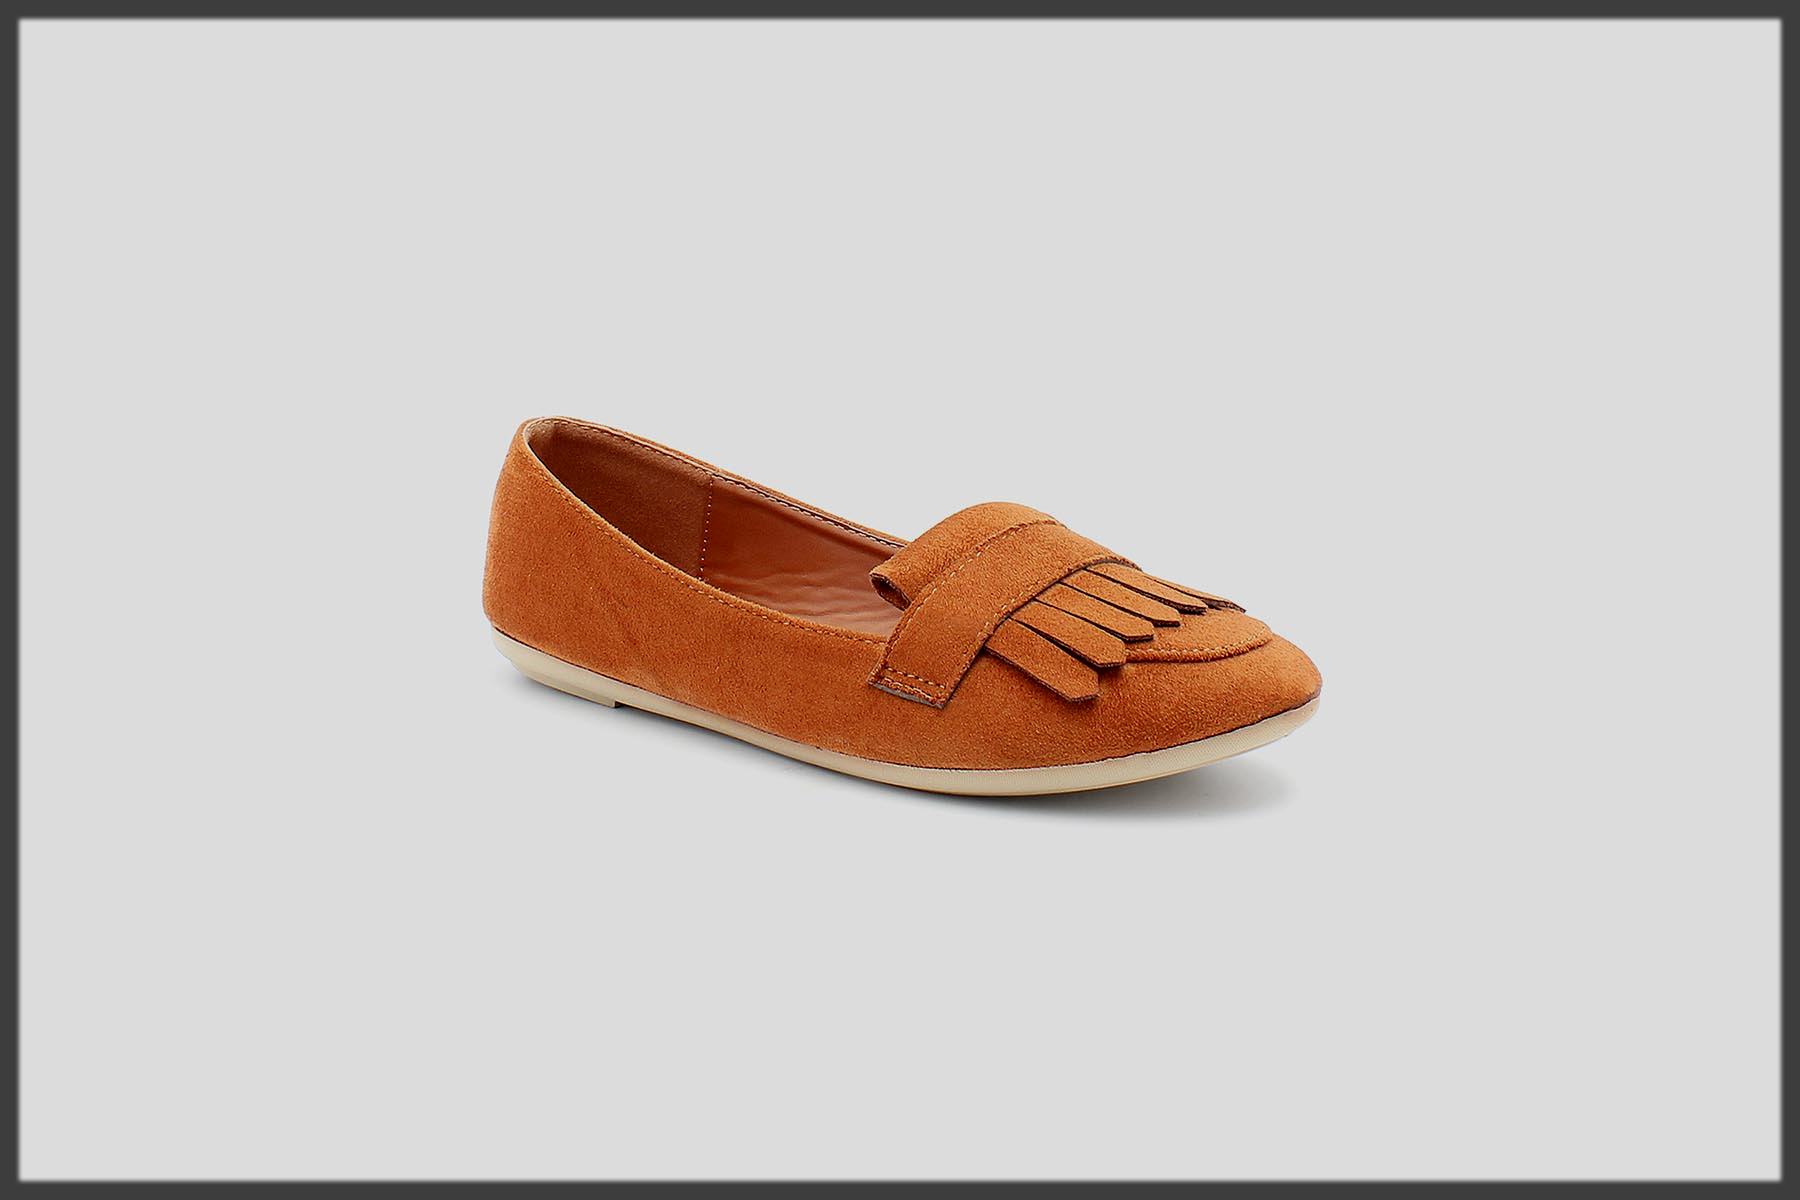 classy brown winter shoes